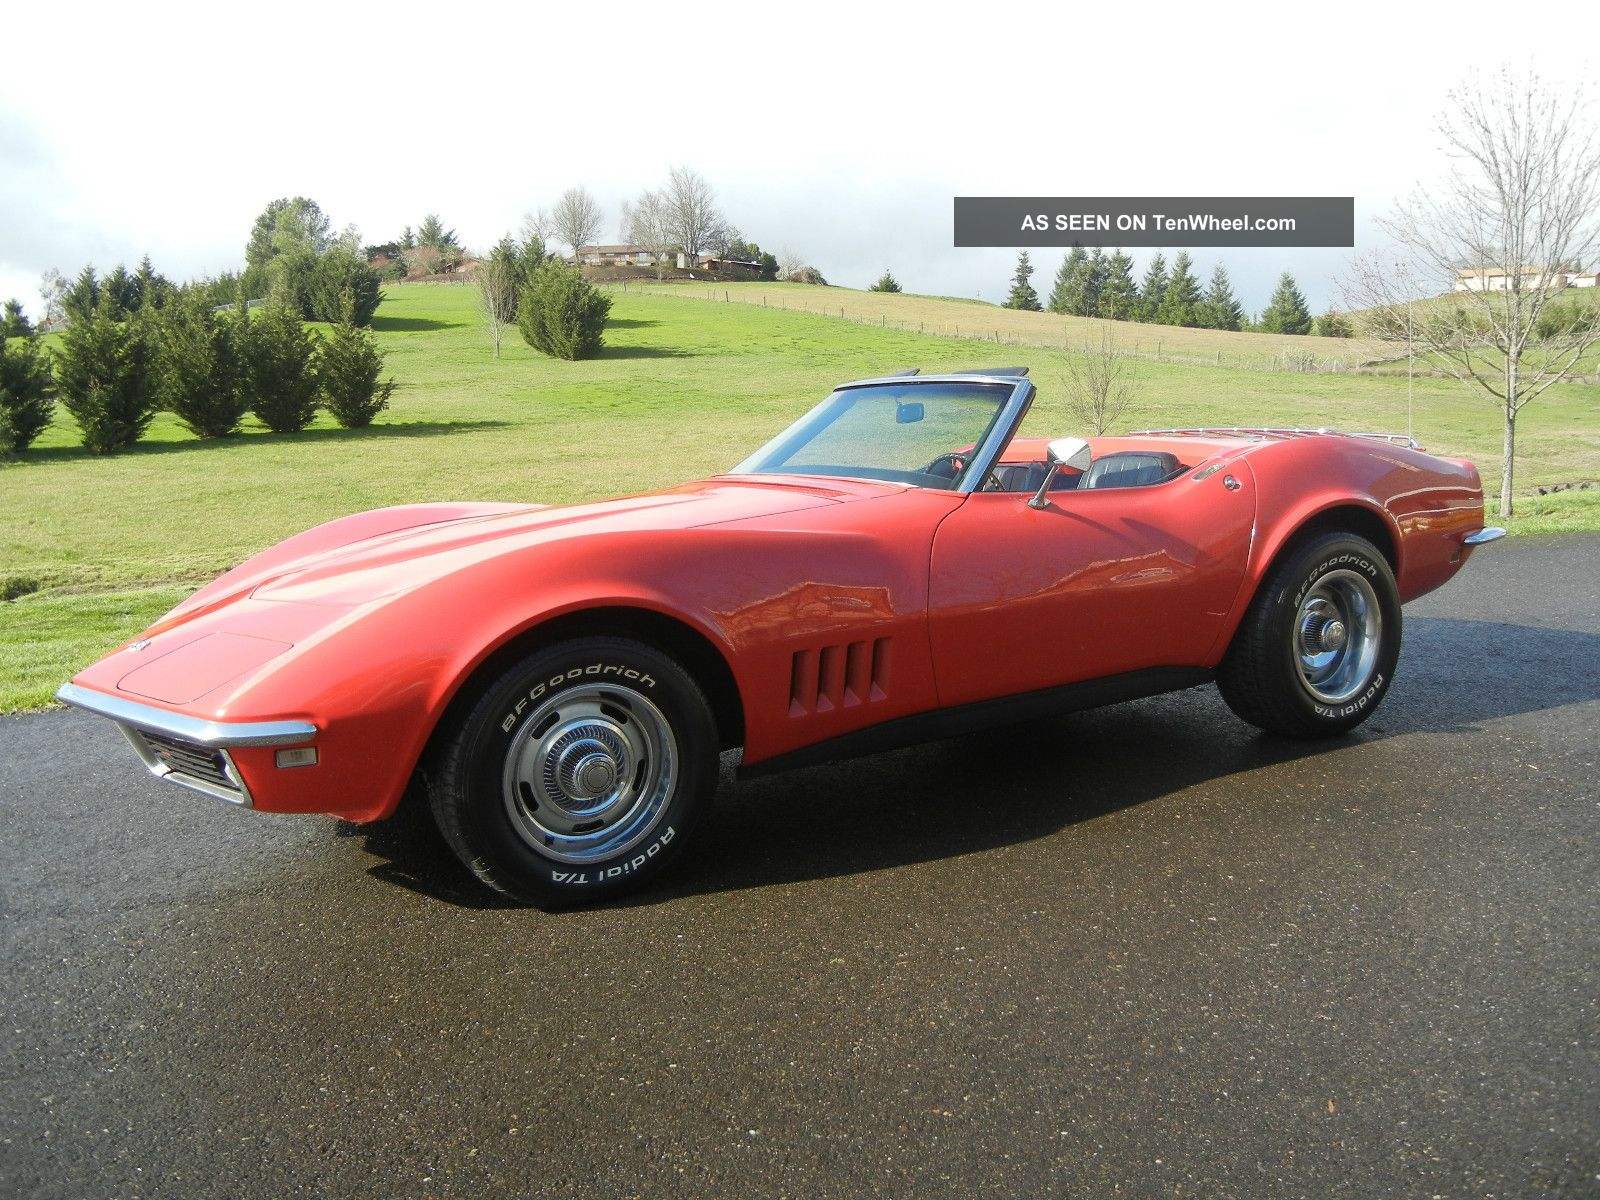 1968 Chevrolet Corvette Convertible Roadster C3 Corvette photo